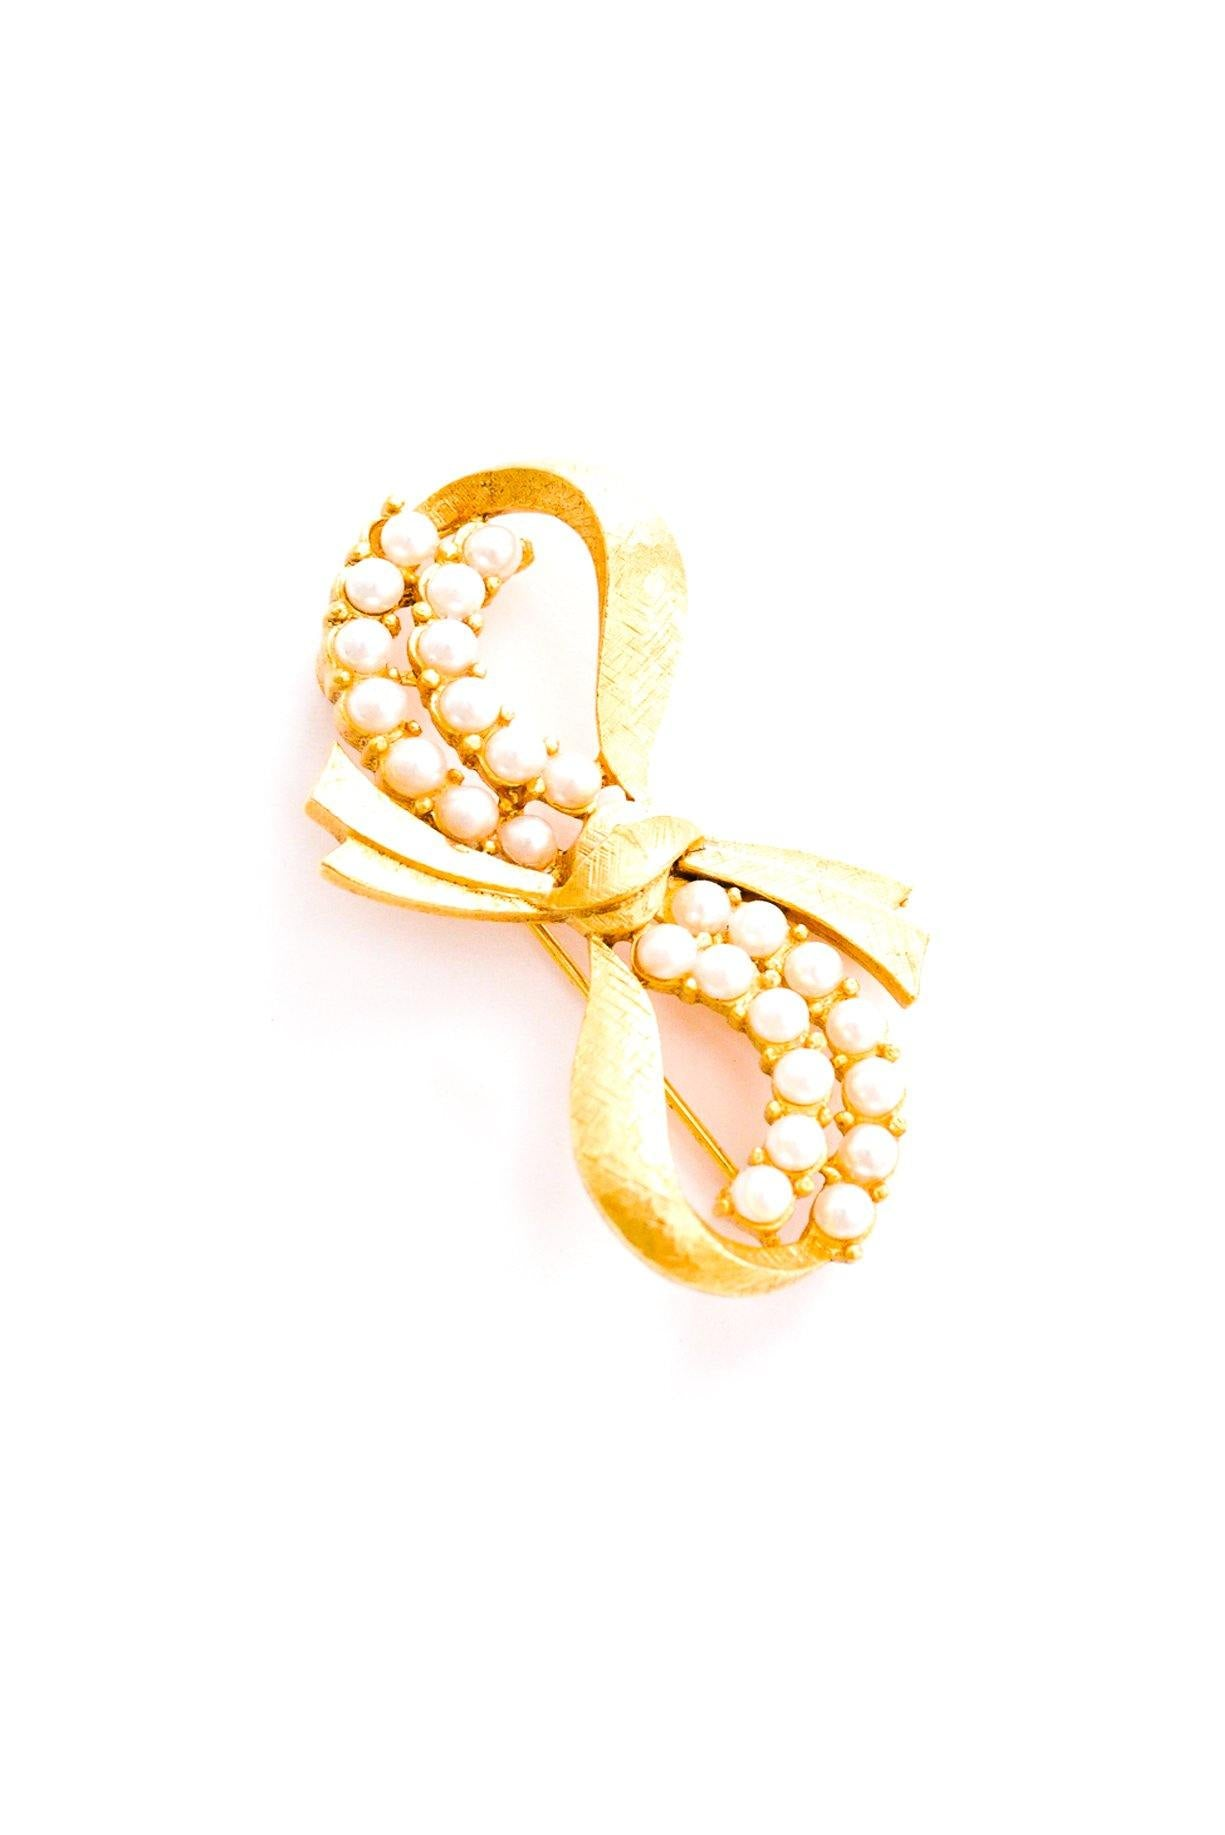 Vintage Anne Klein pearl bow brooch from Sweet & Spark.